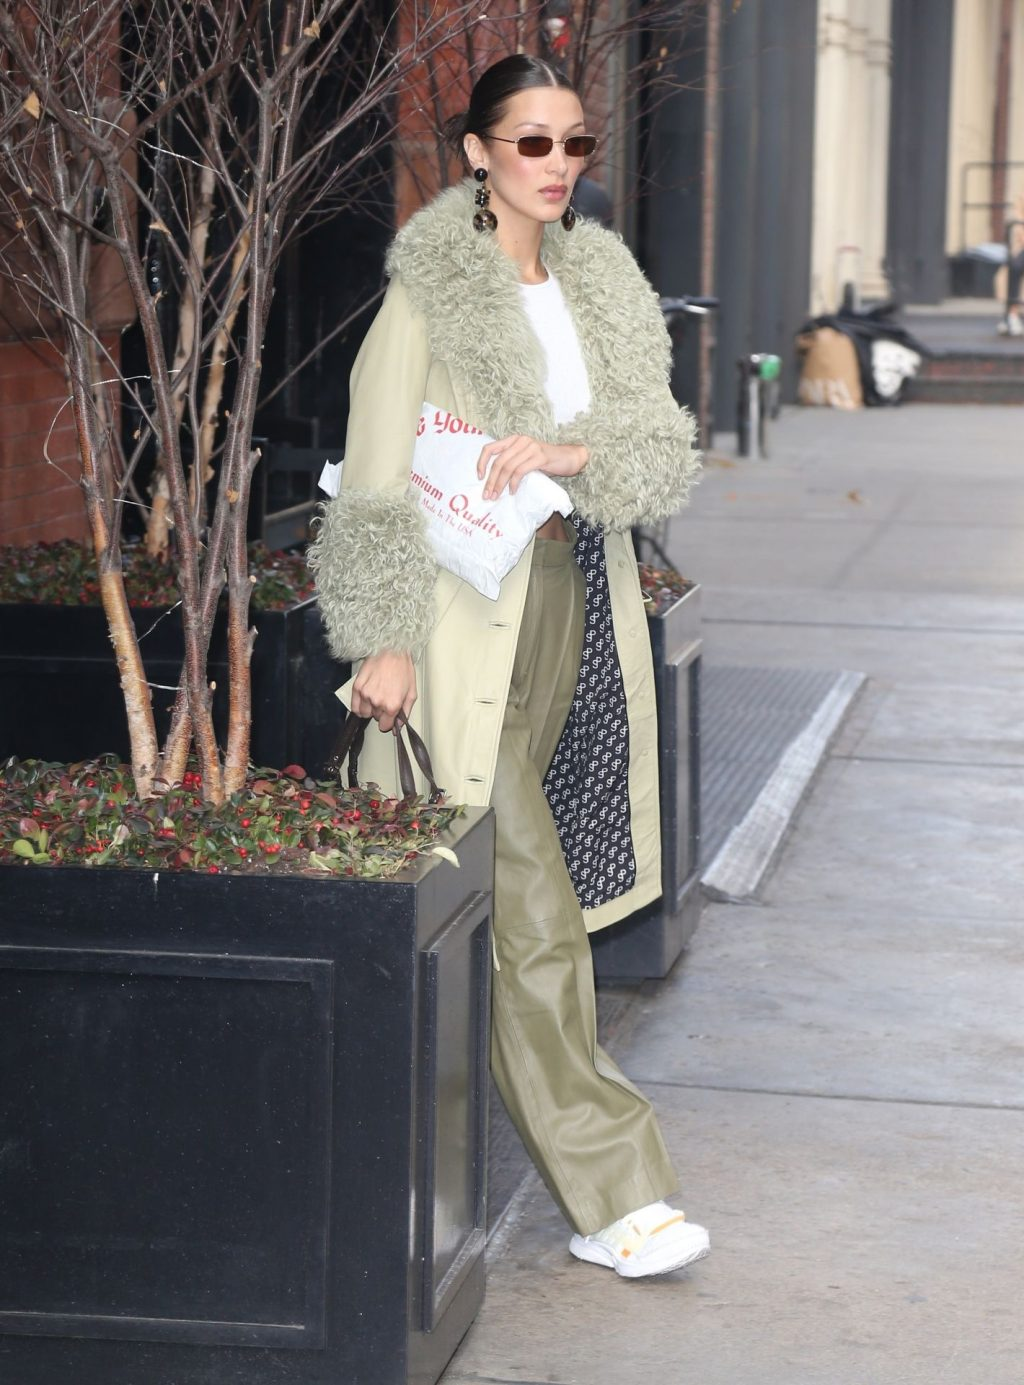 Bella Hadid See through The Fappening Blog 50 1024x1385 - Braless Bella Hadid Arrives at the Park Avenue Armory for the Marc Jacobs Fashion Show (59 Photos)